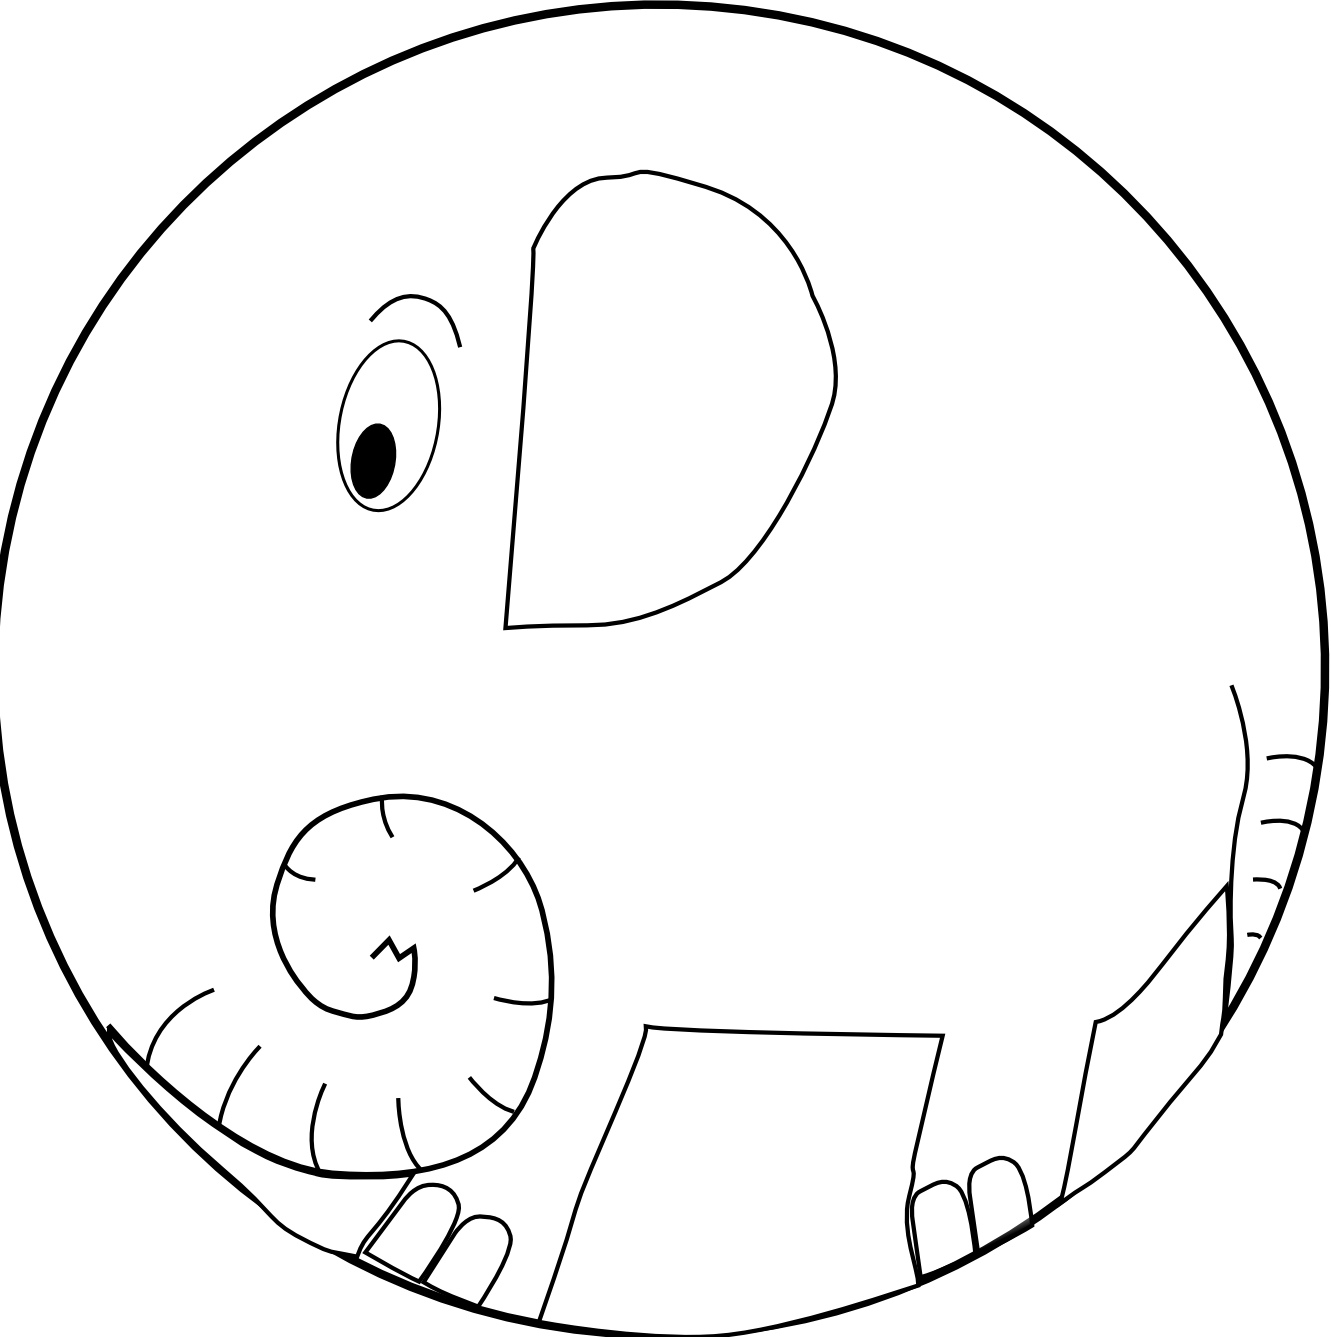 Images For > Elephant Black And White Clip Art